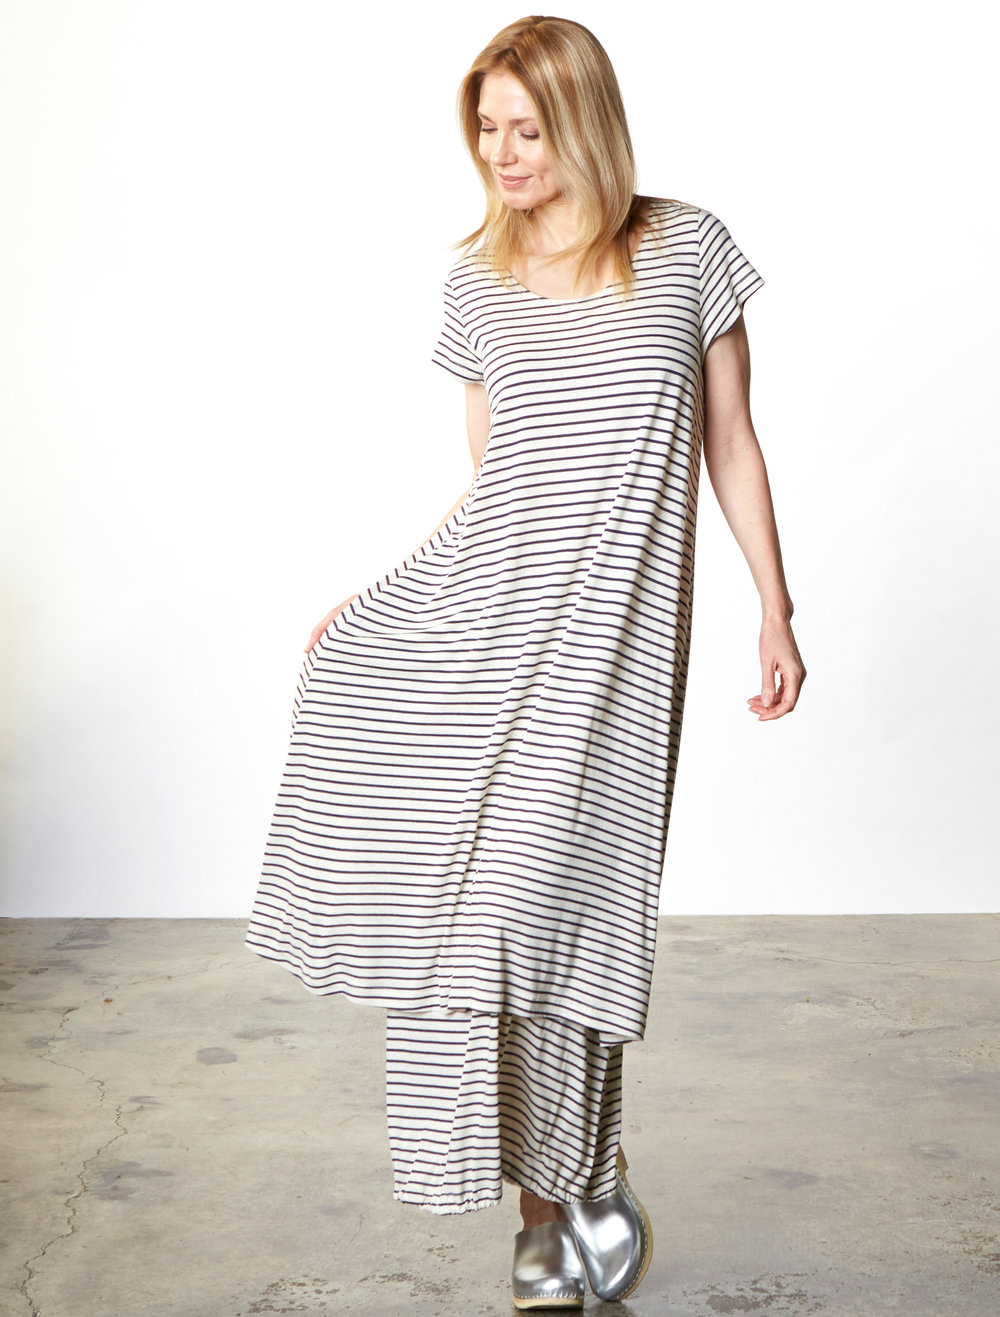 Winslow Dress, Bell Skirt in Cream/Blue Italian Striped Jersey